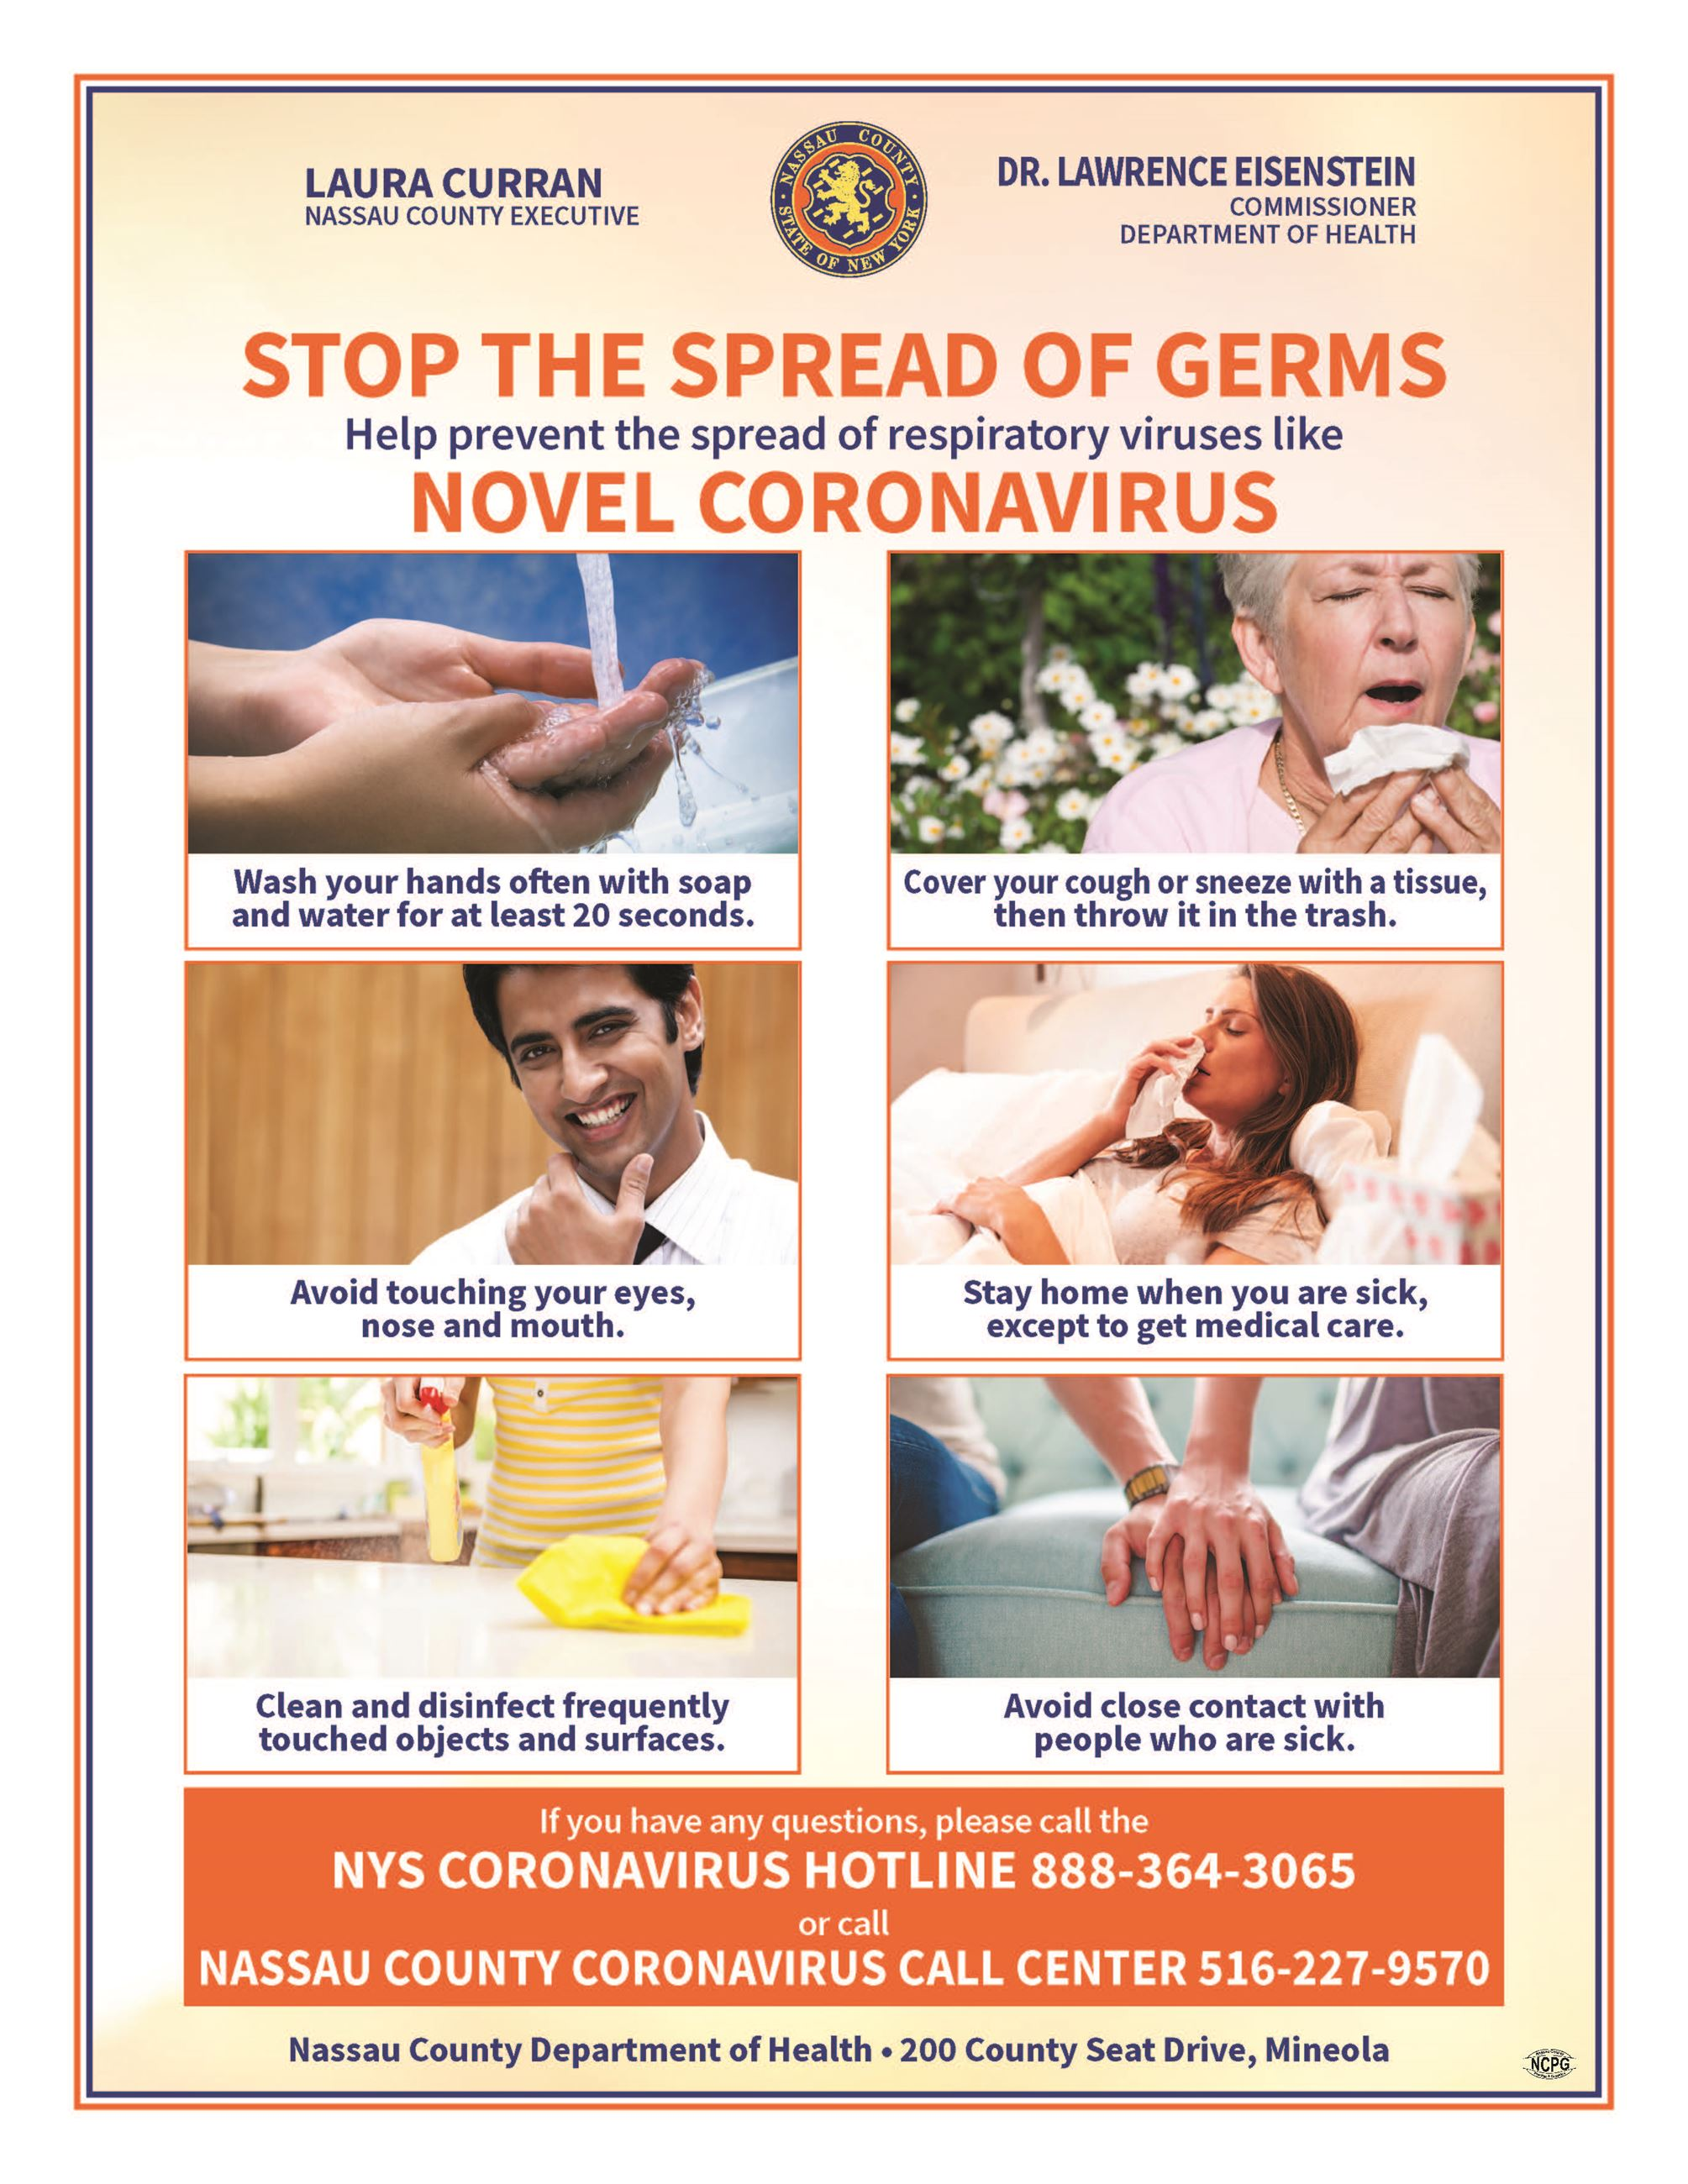 Stop The Spread of Germs help prevent the spread of viruses